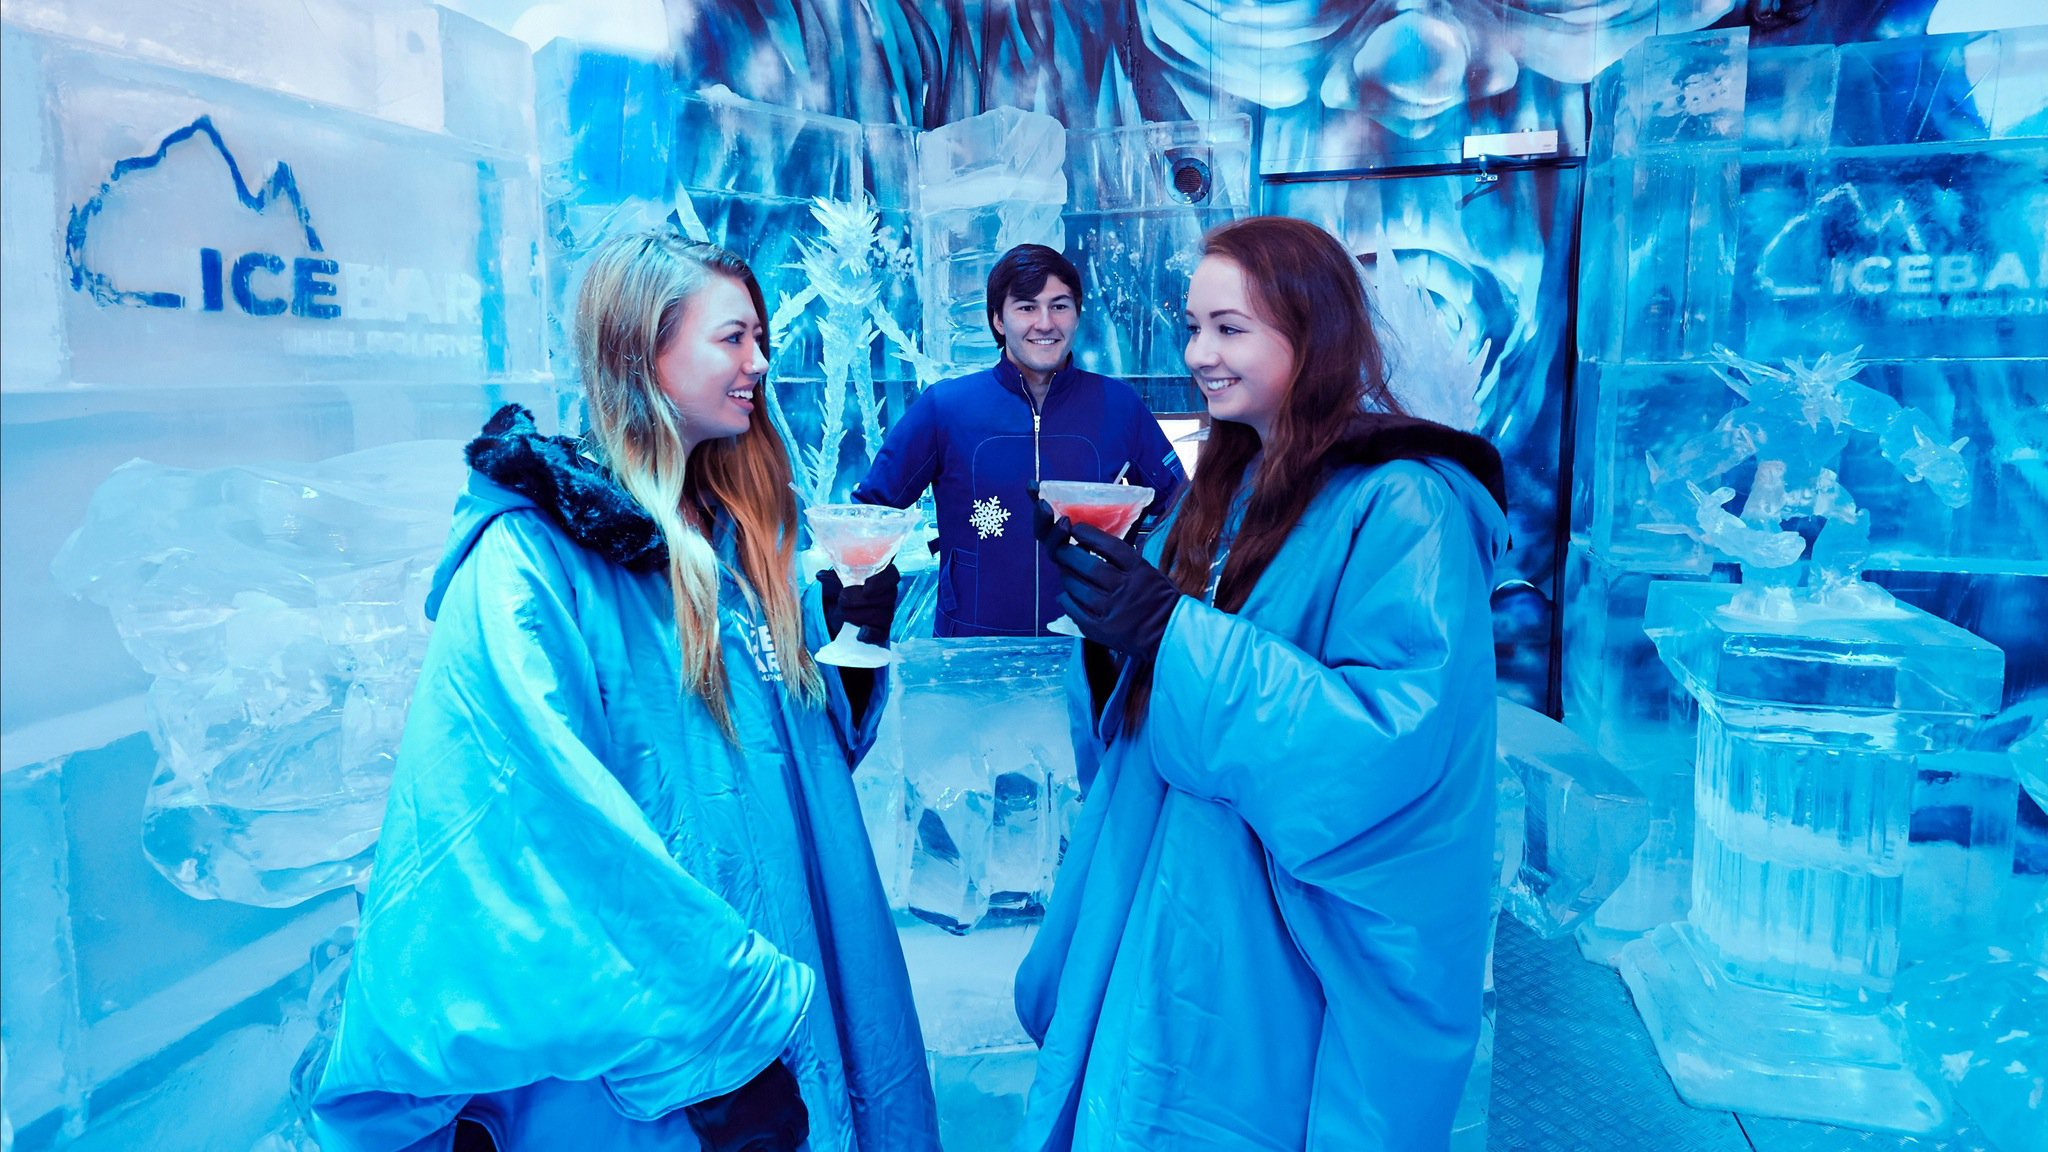 Icebar Melbourne - Attractions Sydney